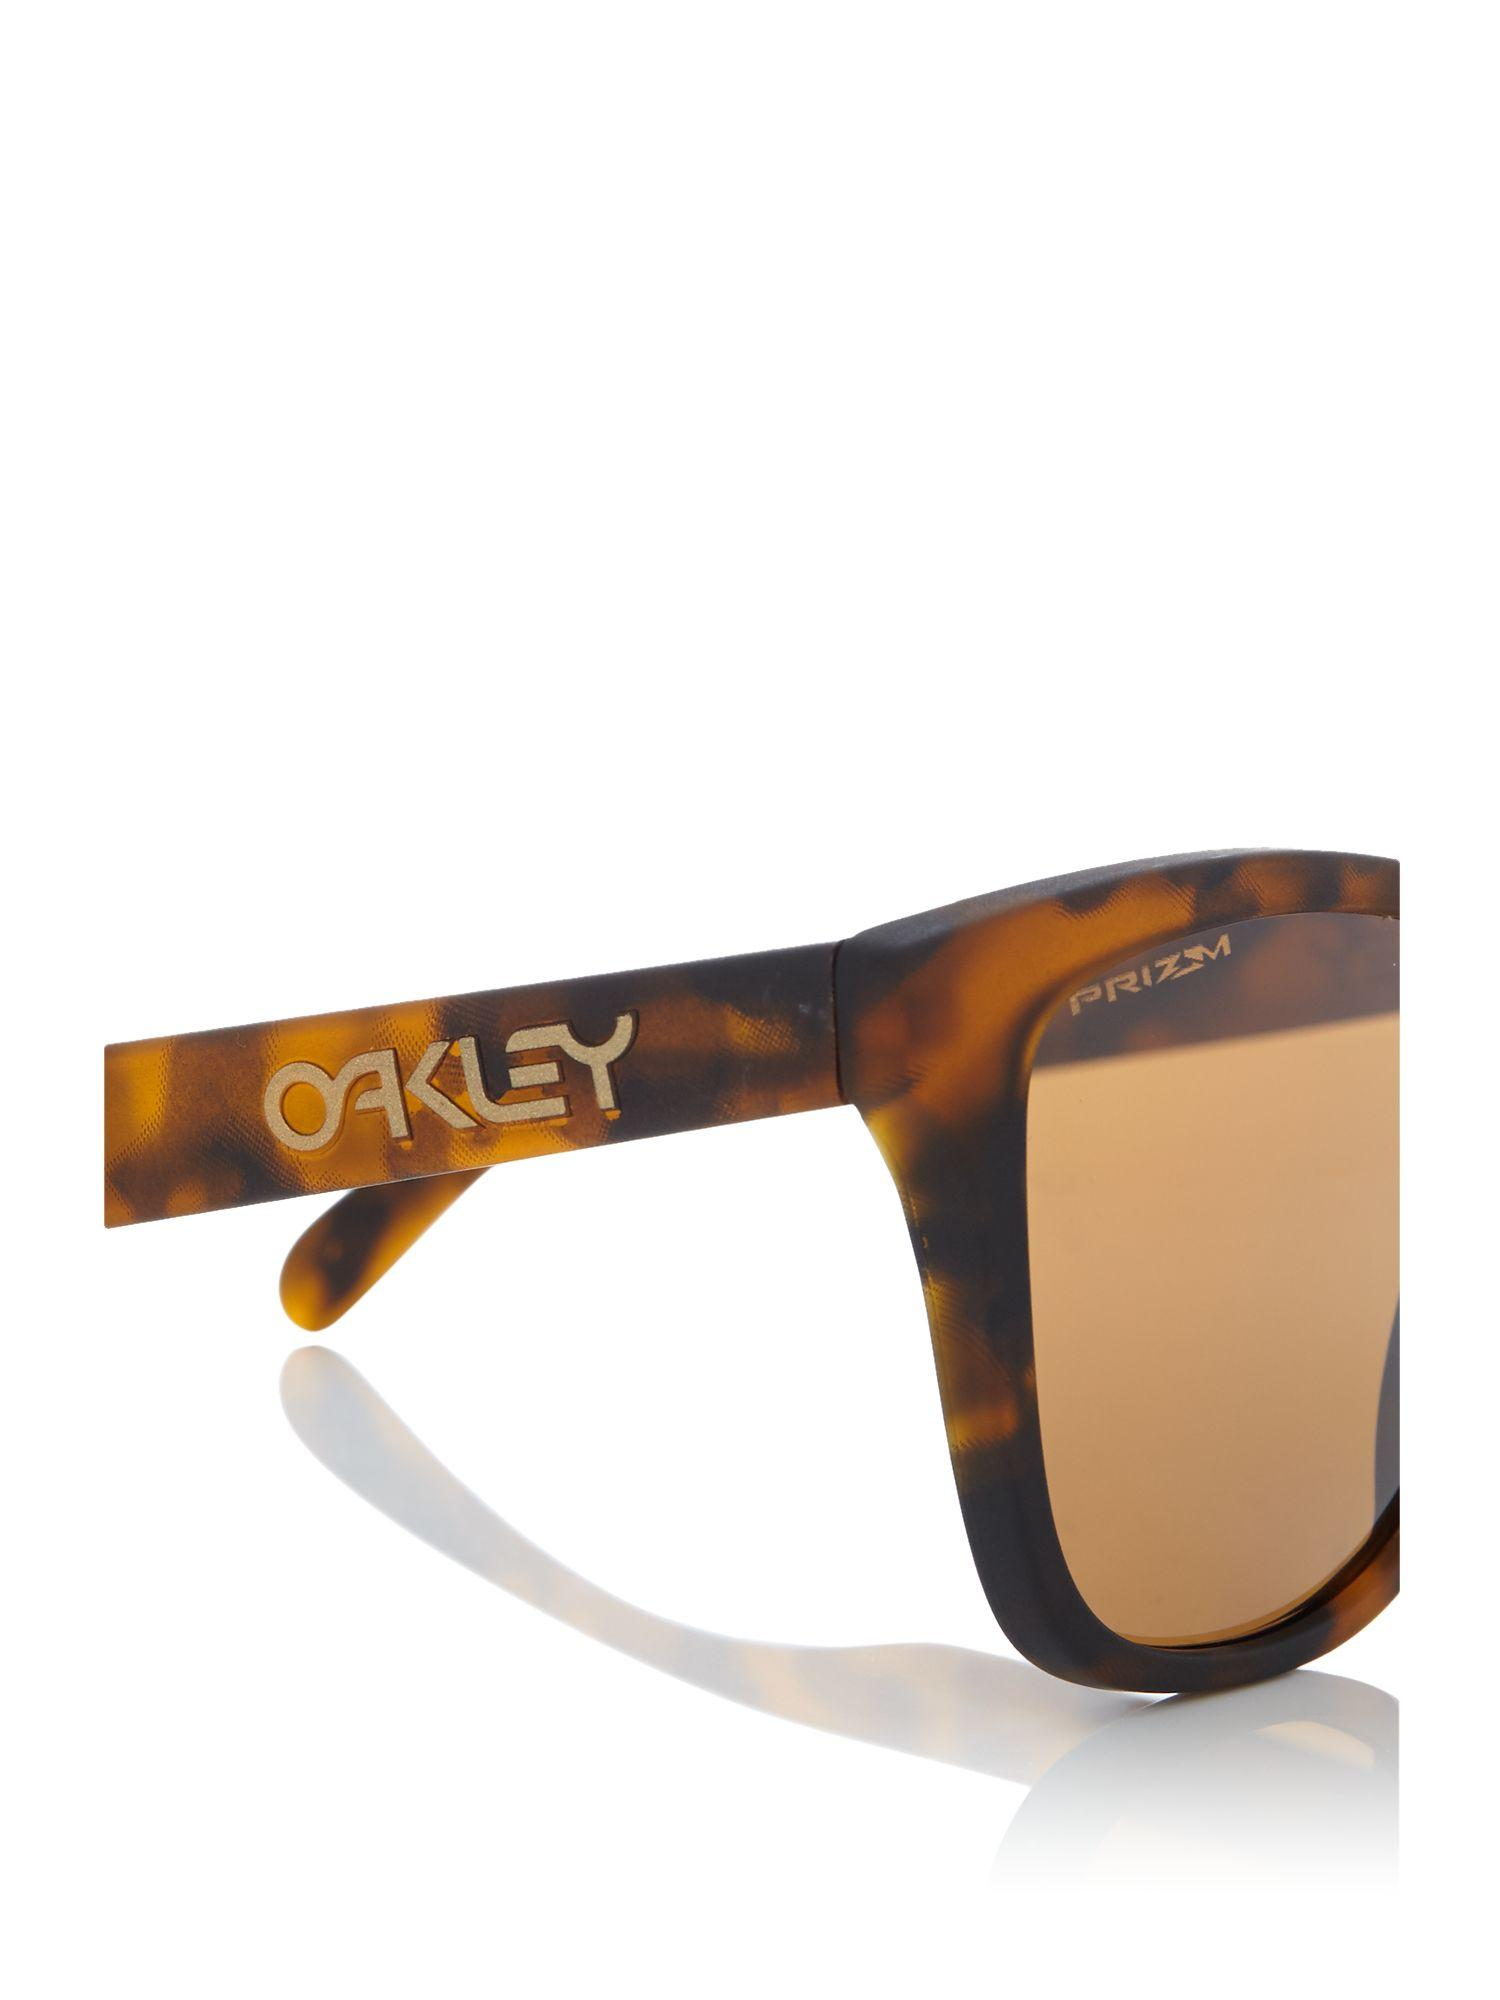 Oakley Matte Tortoise Oo9013 Frogskins Square Sunglasses in Brown